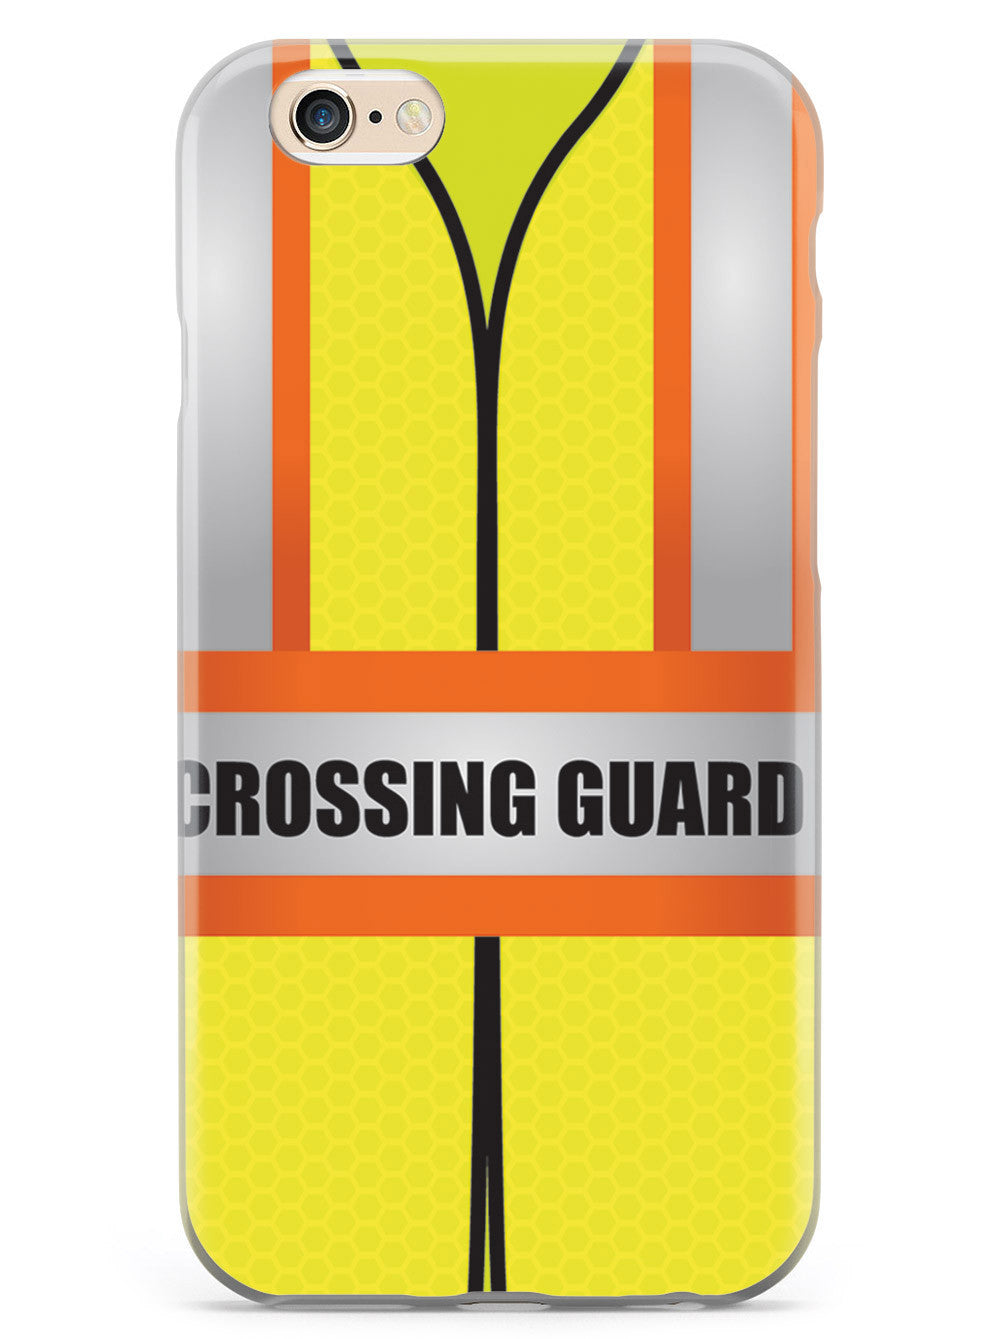 Crossing Guard Case